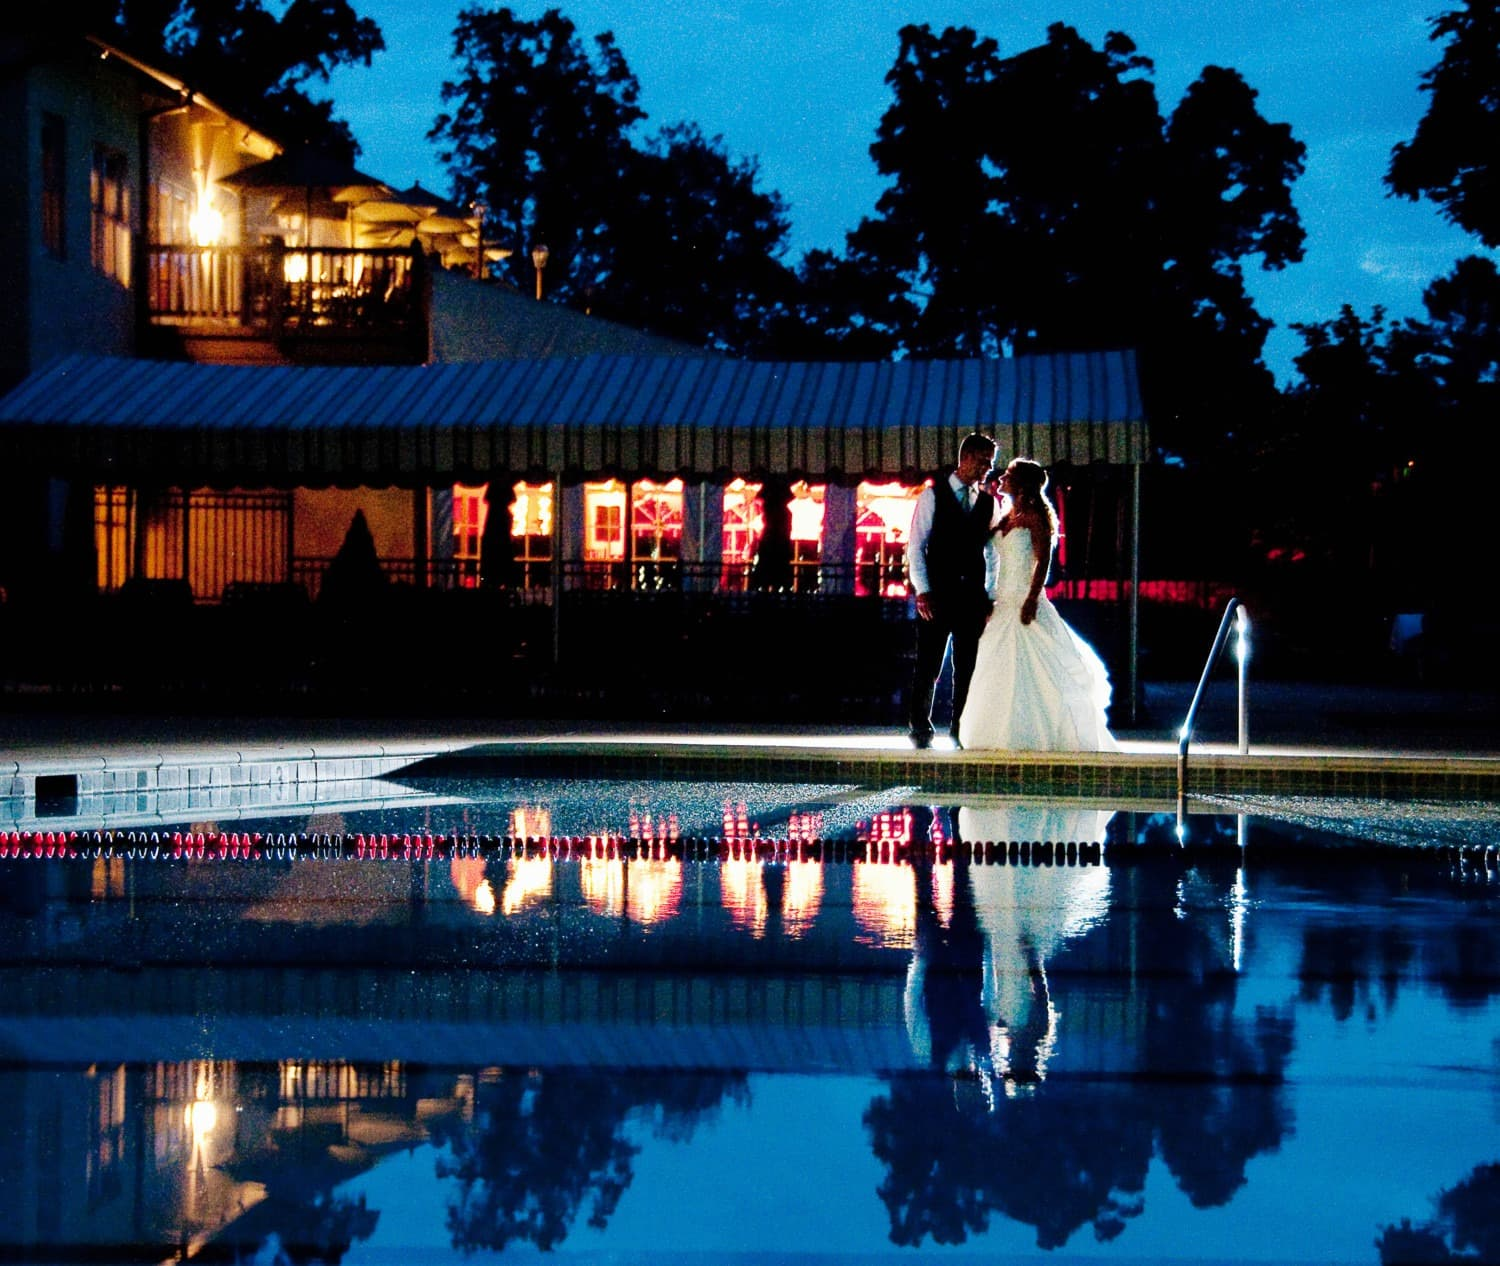 outdoor pool and wedding